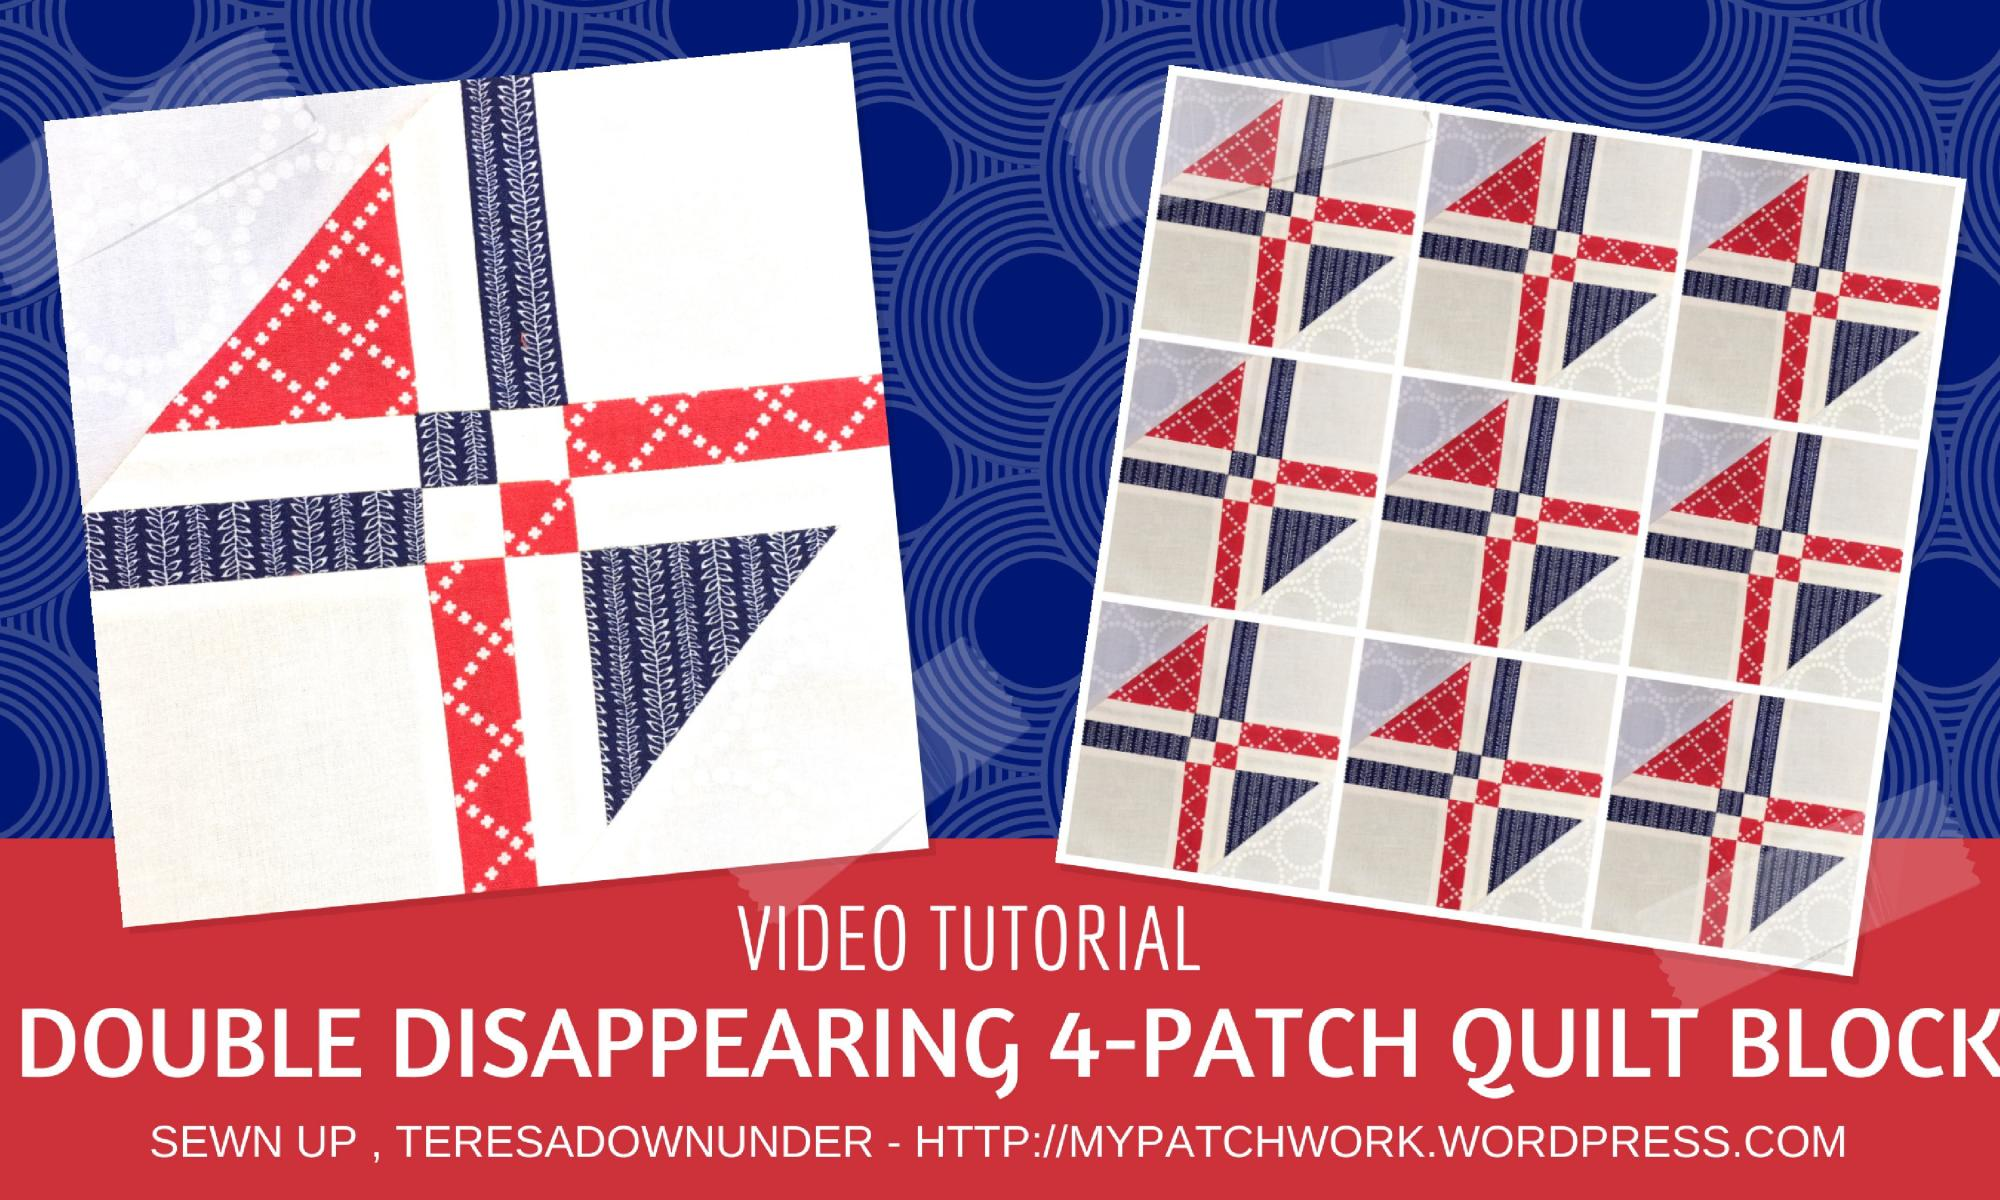 Video tutorial: double disappearing 4-patch quilt block